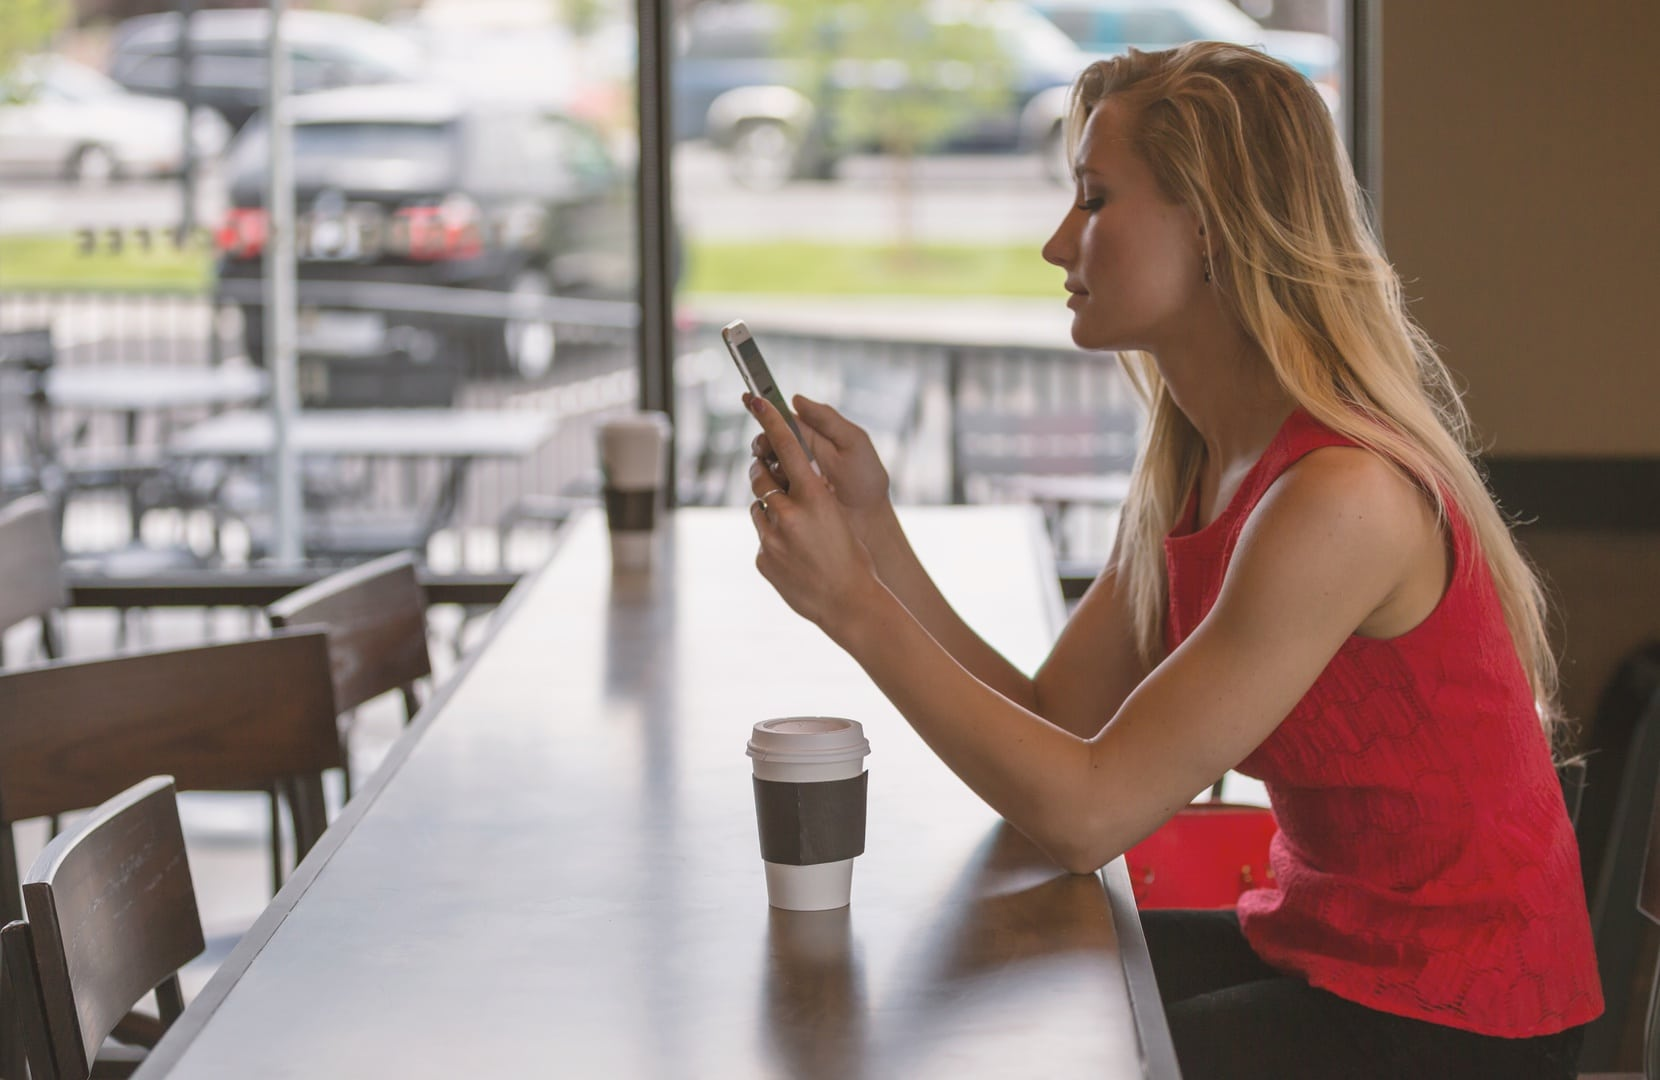 How to Stop Texting and Actually Date